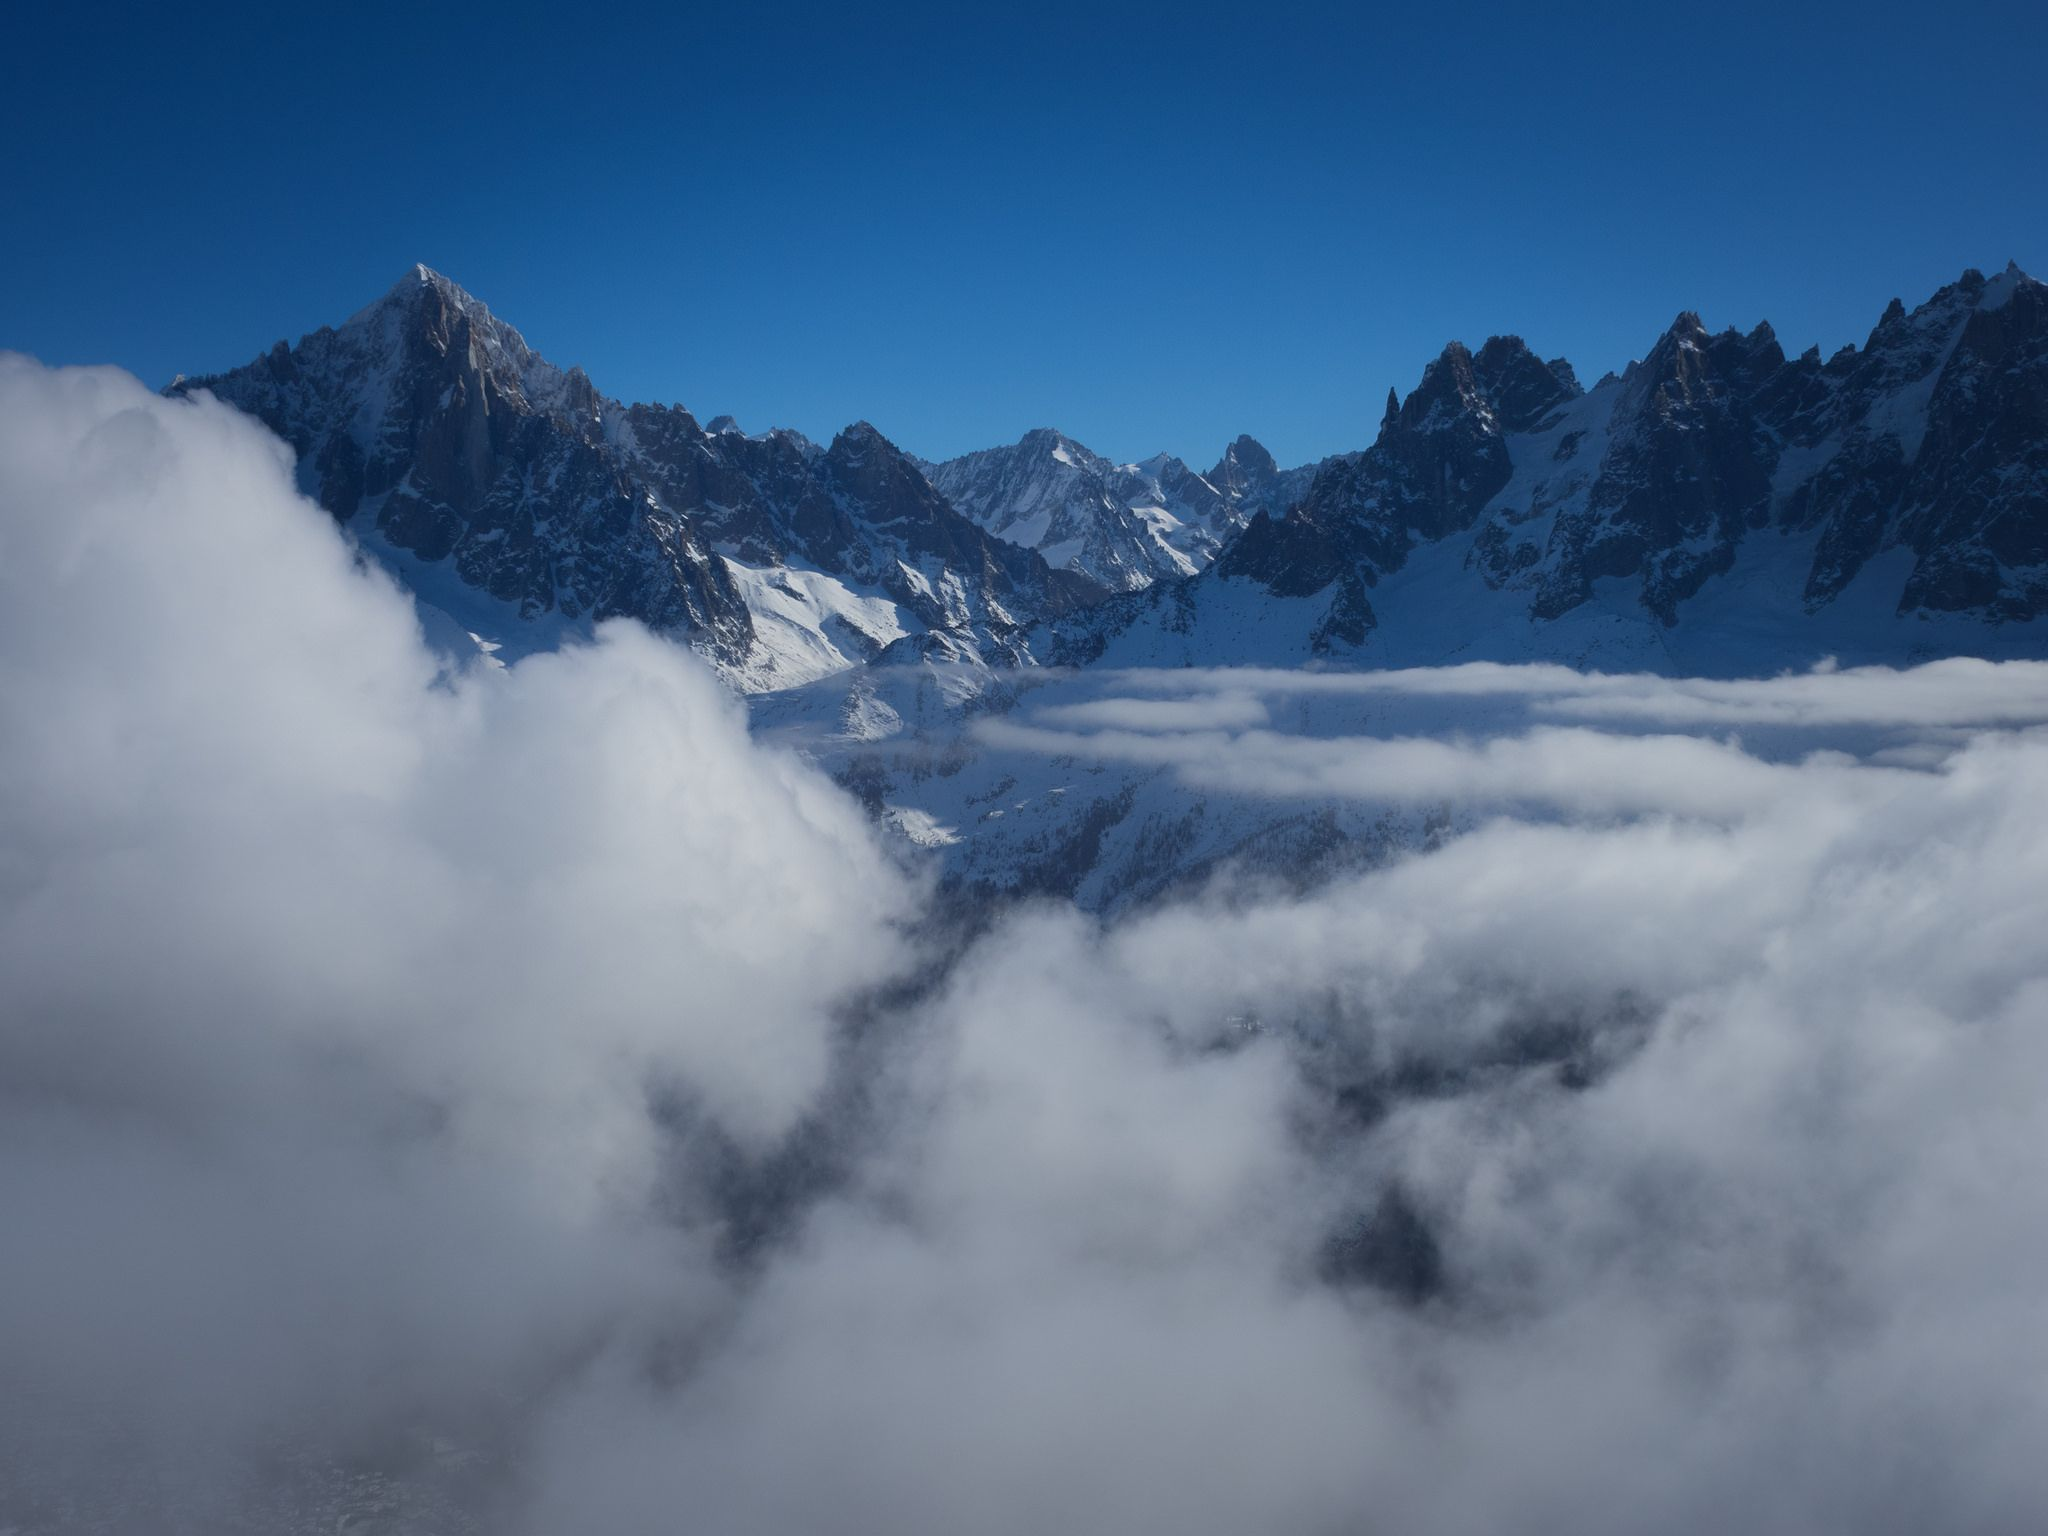 https://flic.kr/p/CKVCYv | Extreme Environments - The Aiguille Verte from Le Brévent, Chamonix Valley, France